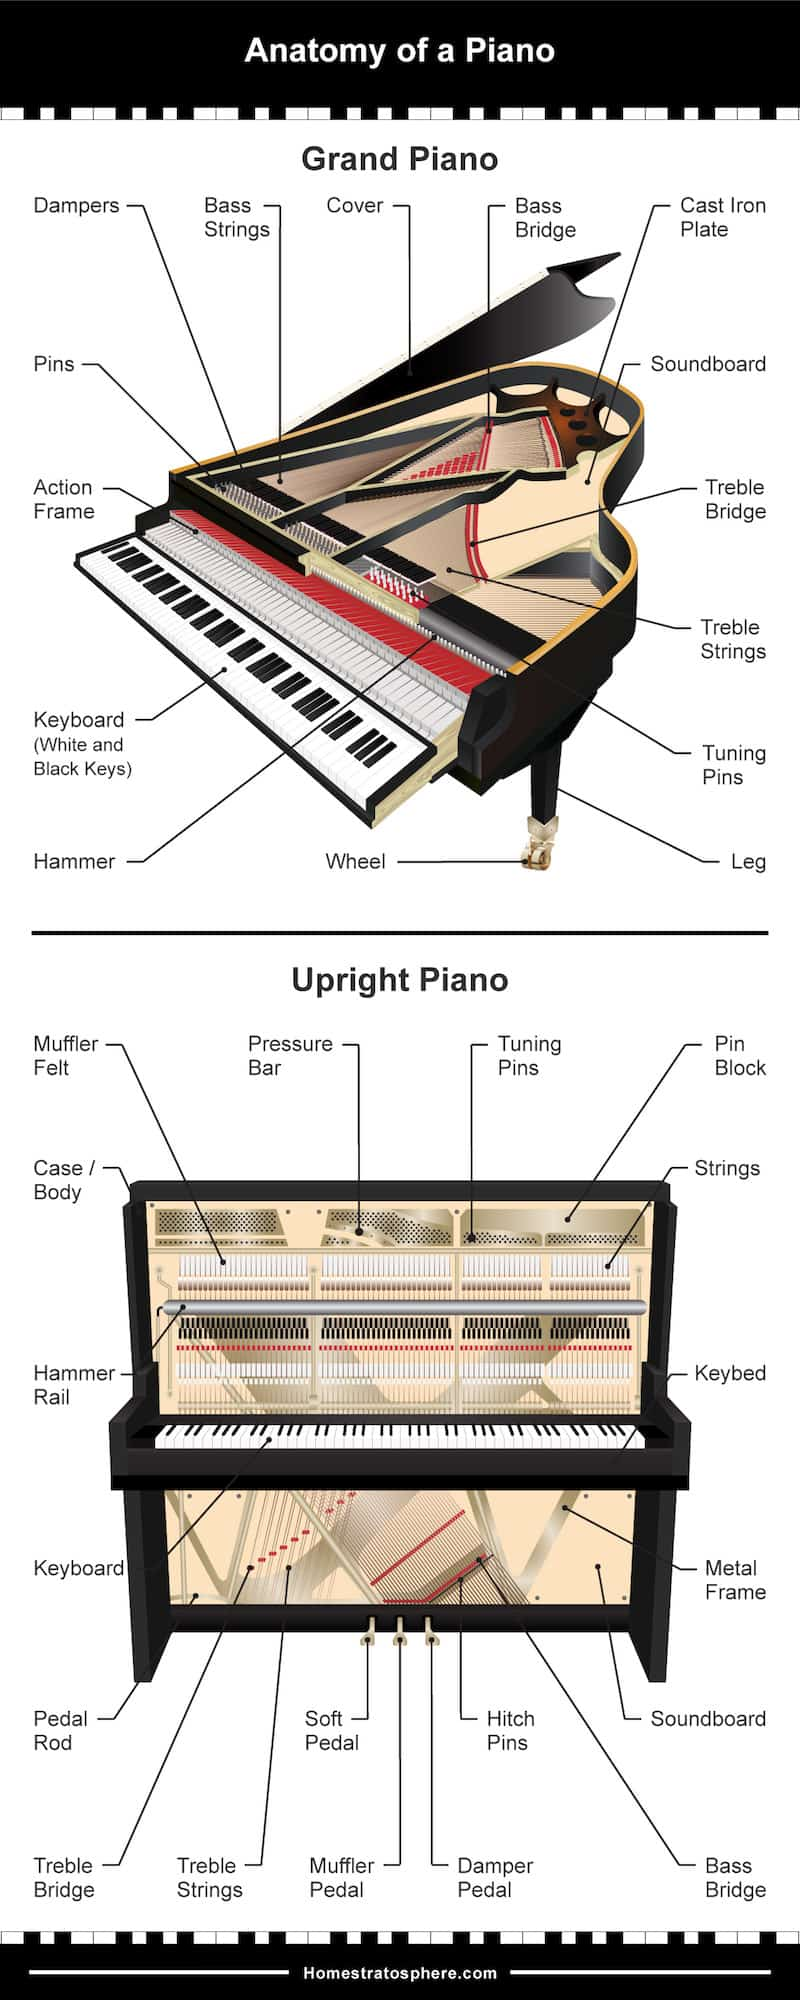 2 diagrams showing the exterior and interior parts of both a grand and upright piano